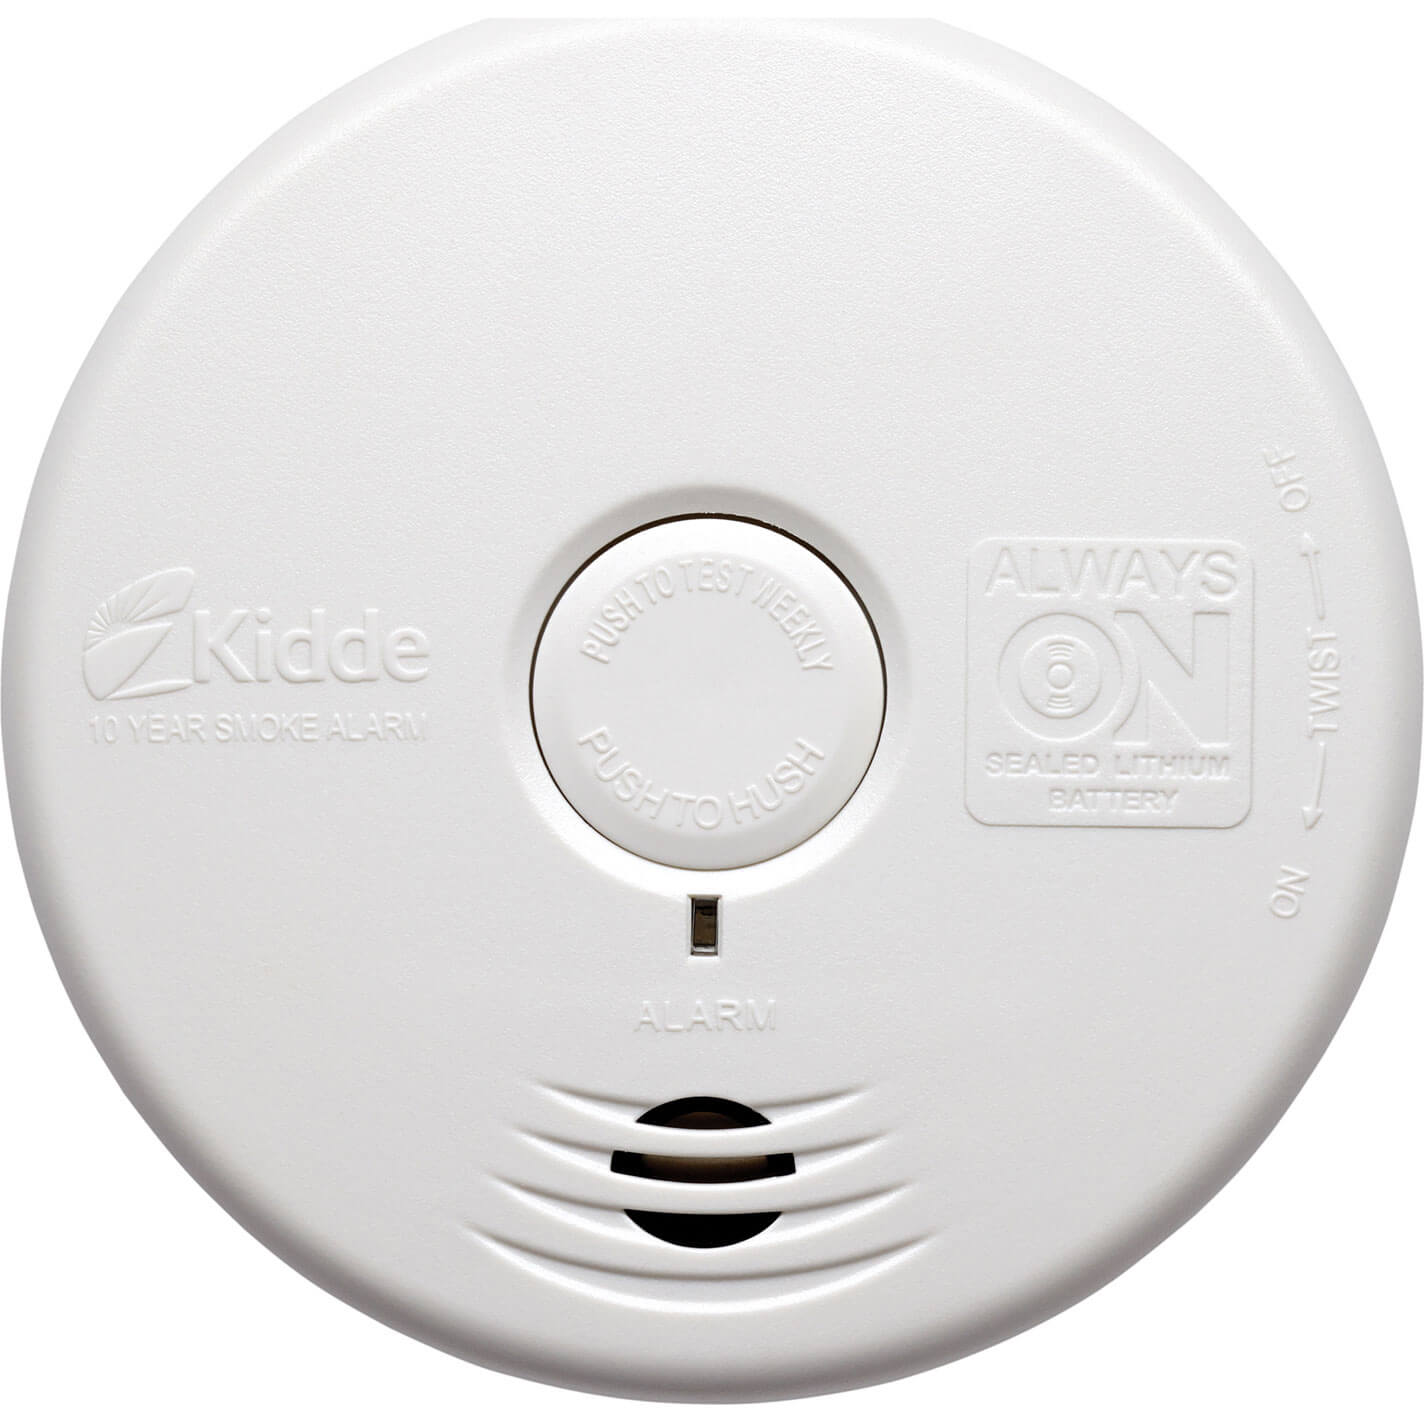 Image of Kidde Homeprotect Living Areas Smoke Alarm